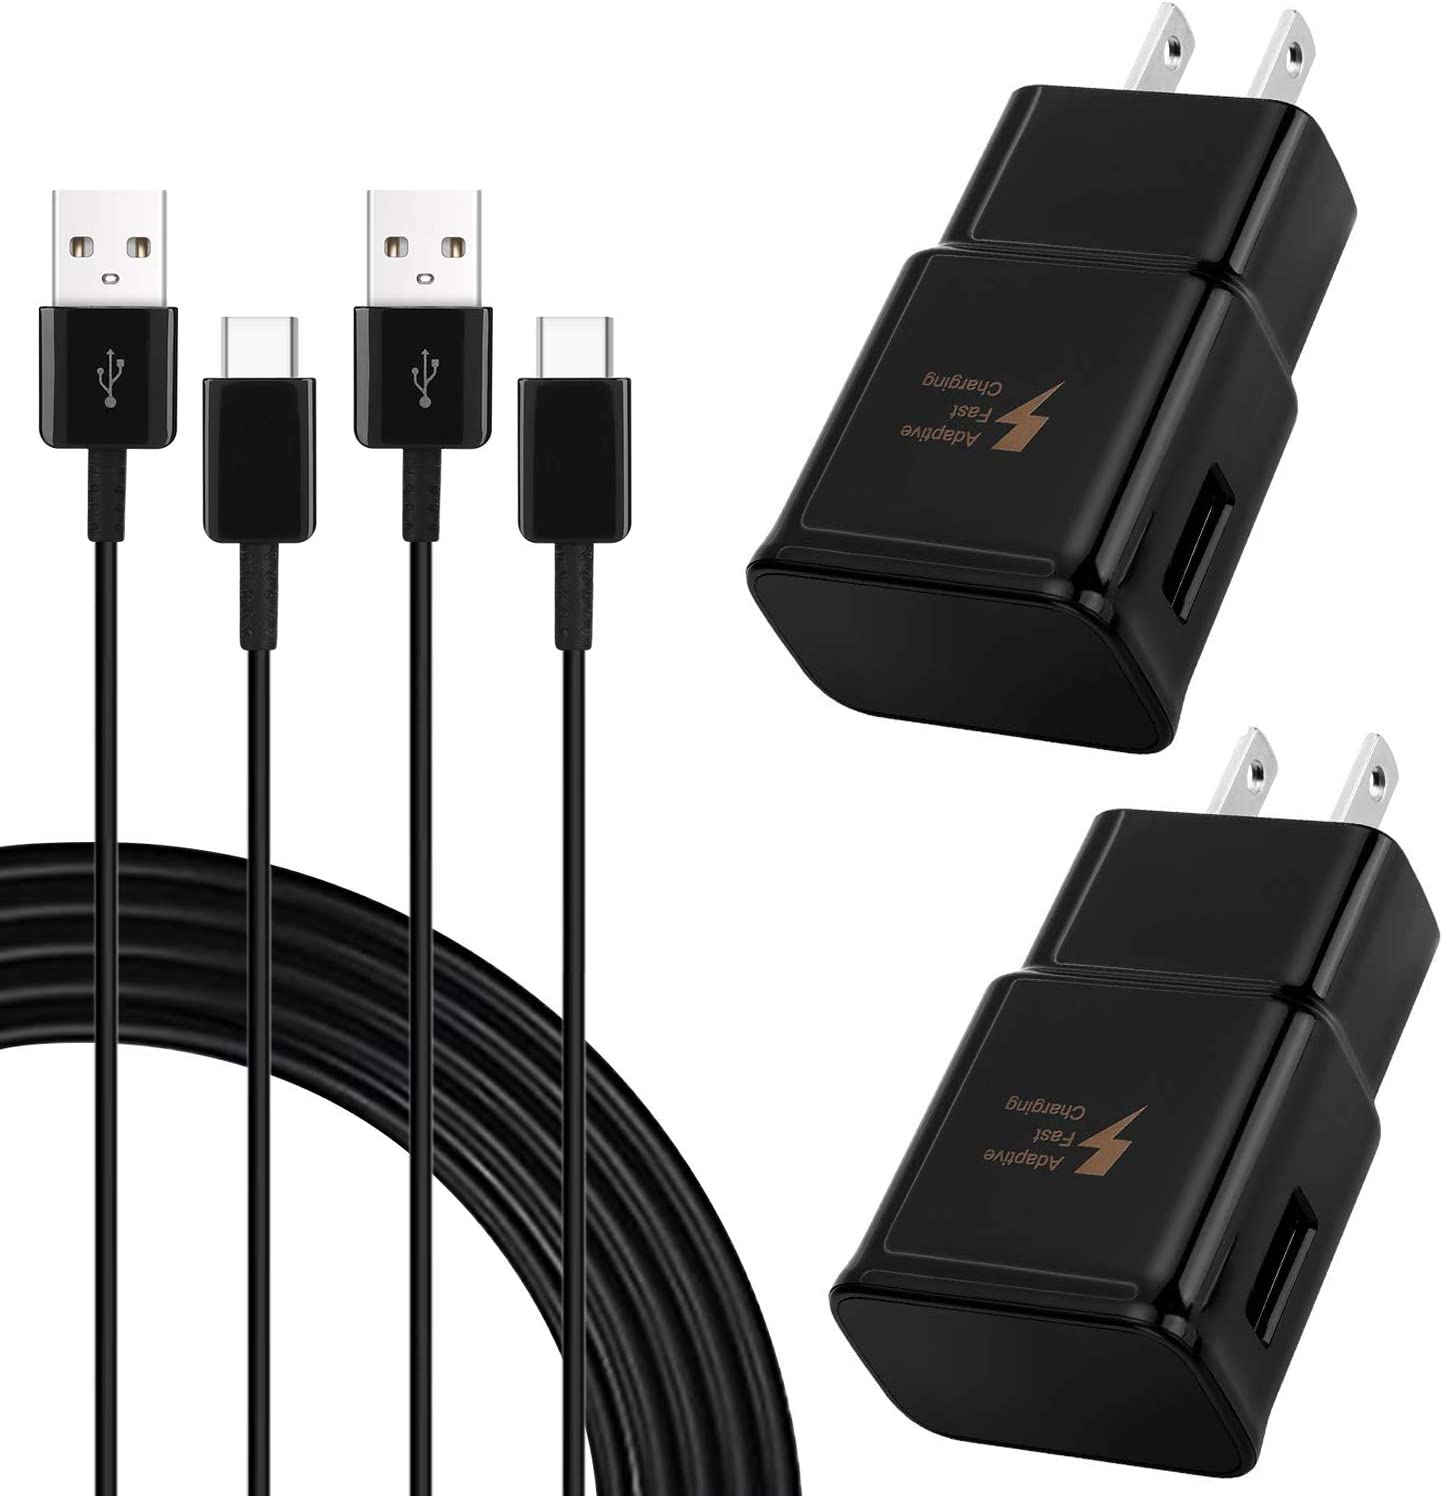 Adaptive Fast Charger Compatible Samsung Galaxy S10 S10e S9 S9 Plus S8 S8+ Note 8 Note 9,Fast Charging Wall Charger Adapter with 6.6ft Type C Charging Cable